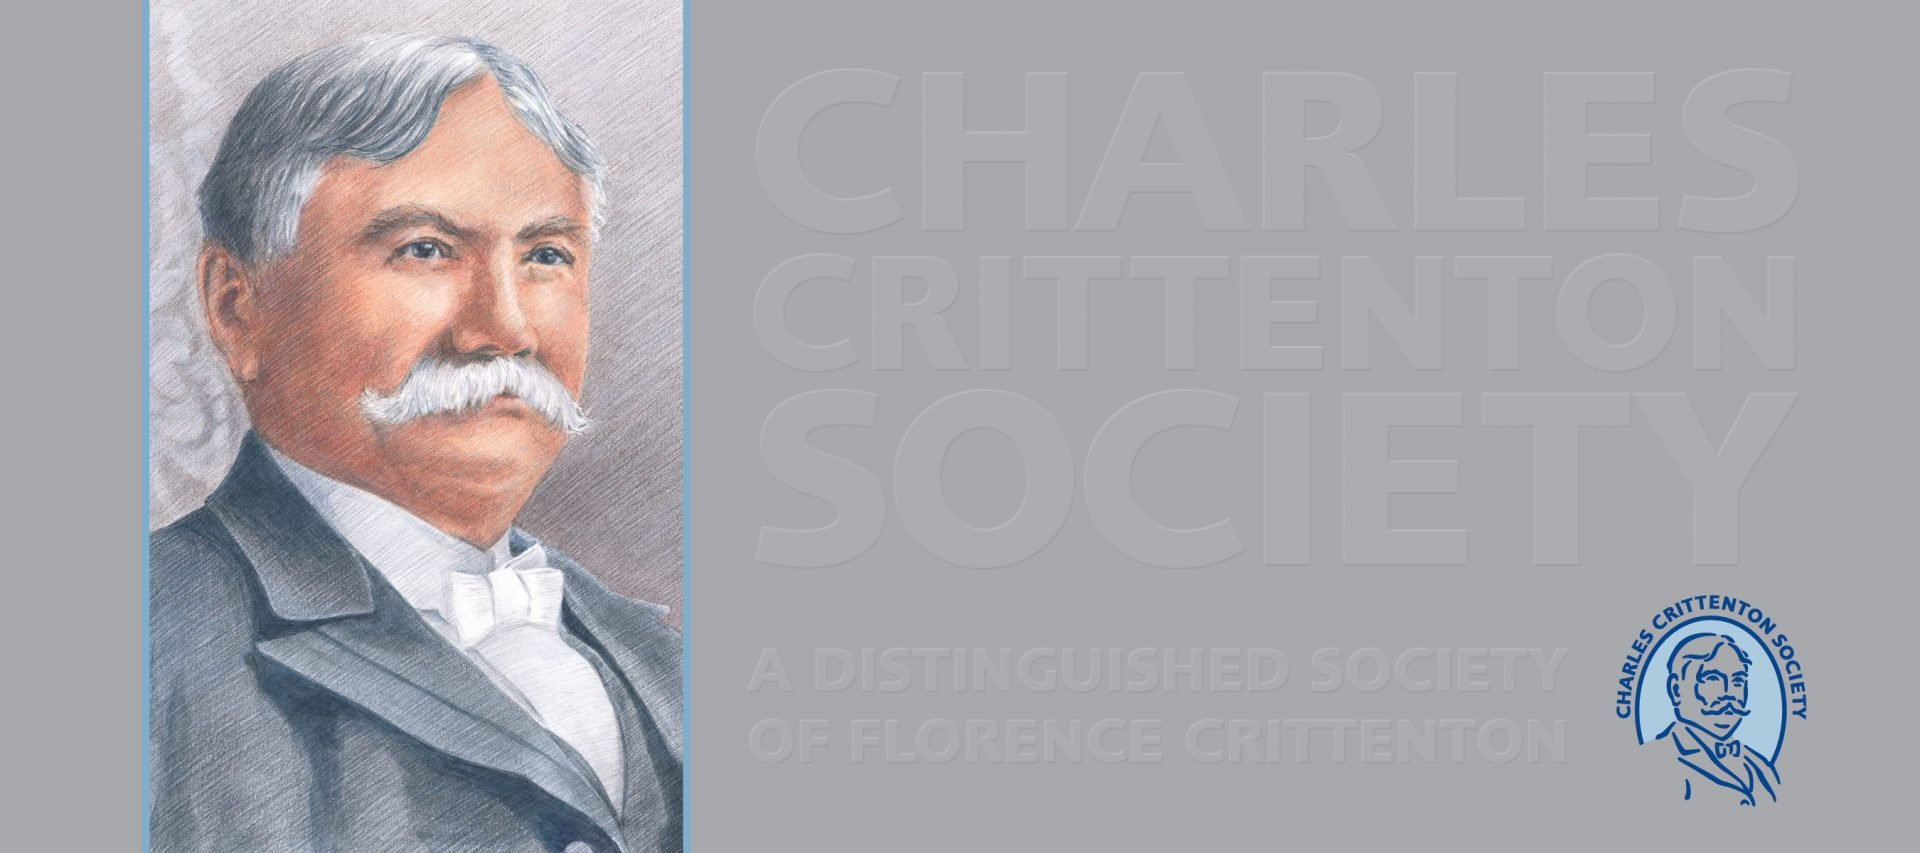 Charles Crittenton Society Front of Greeting Card